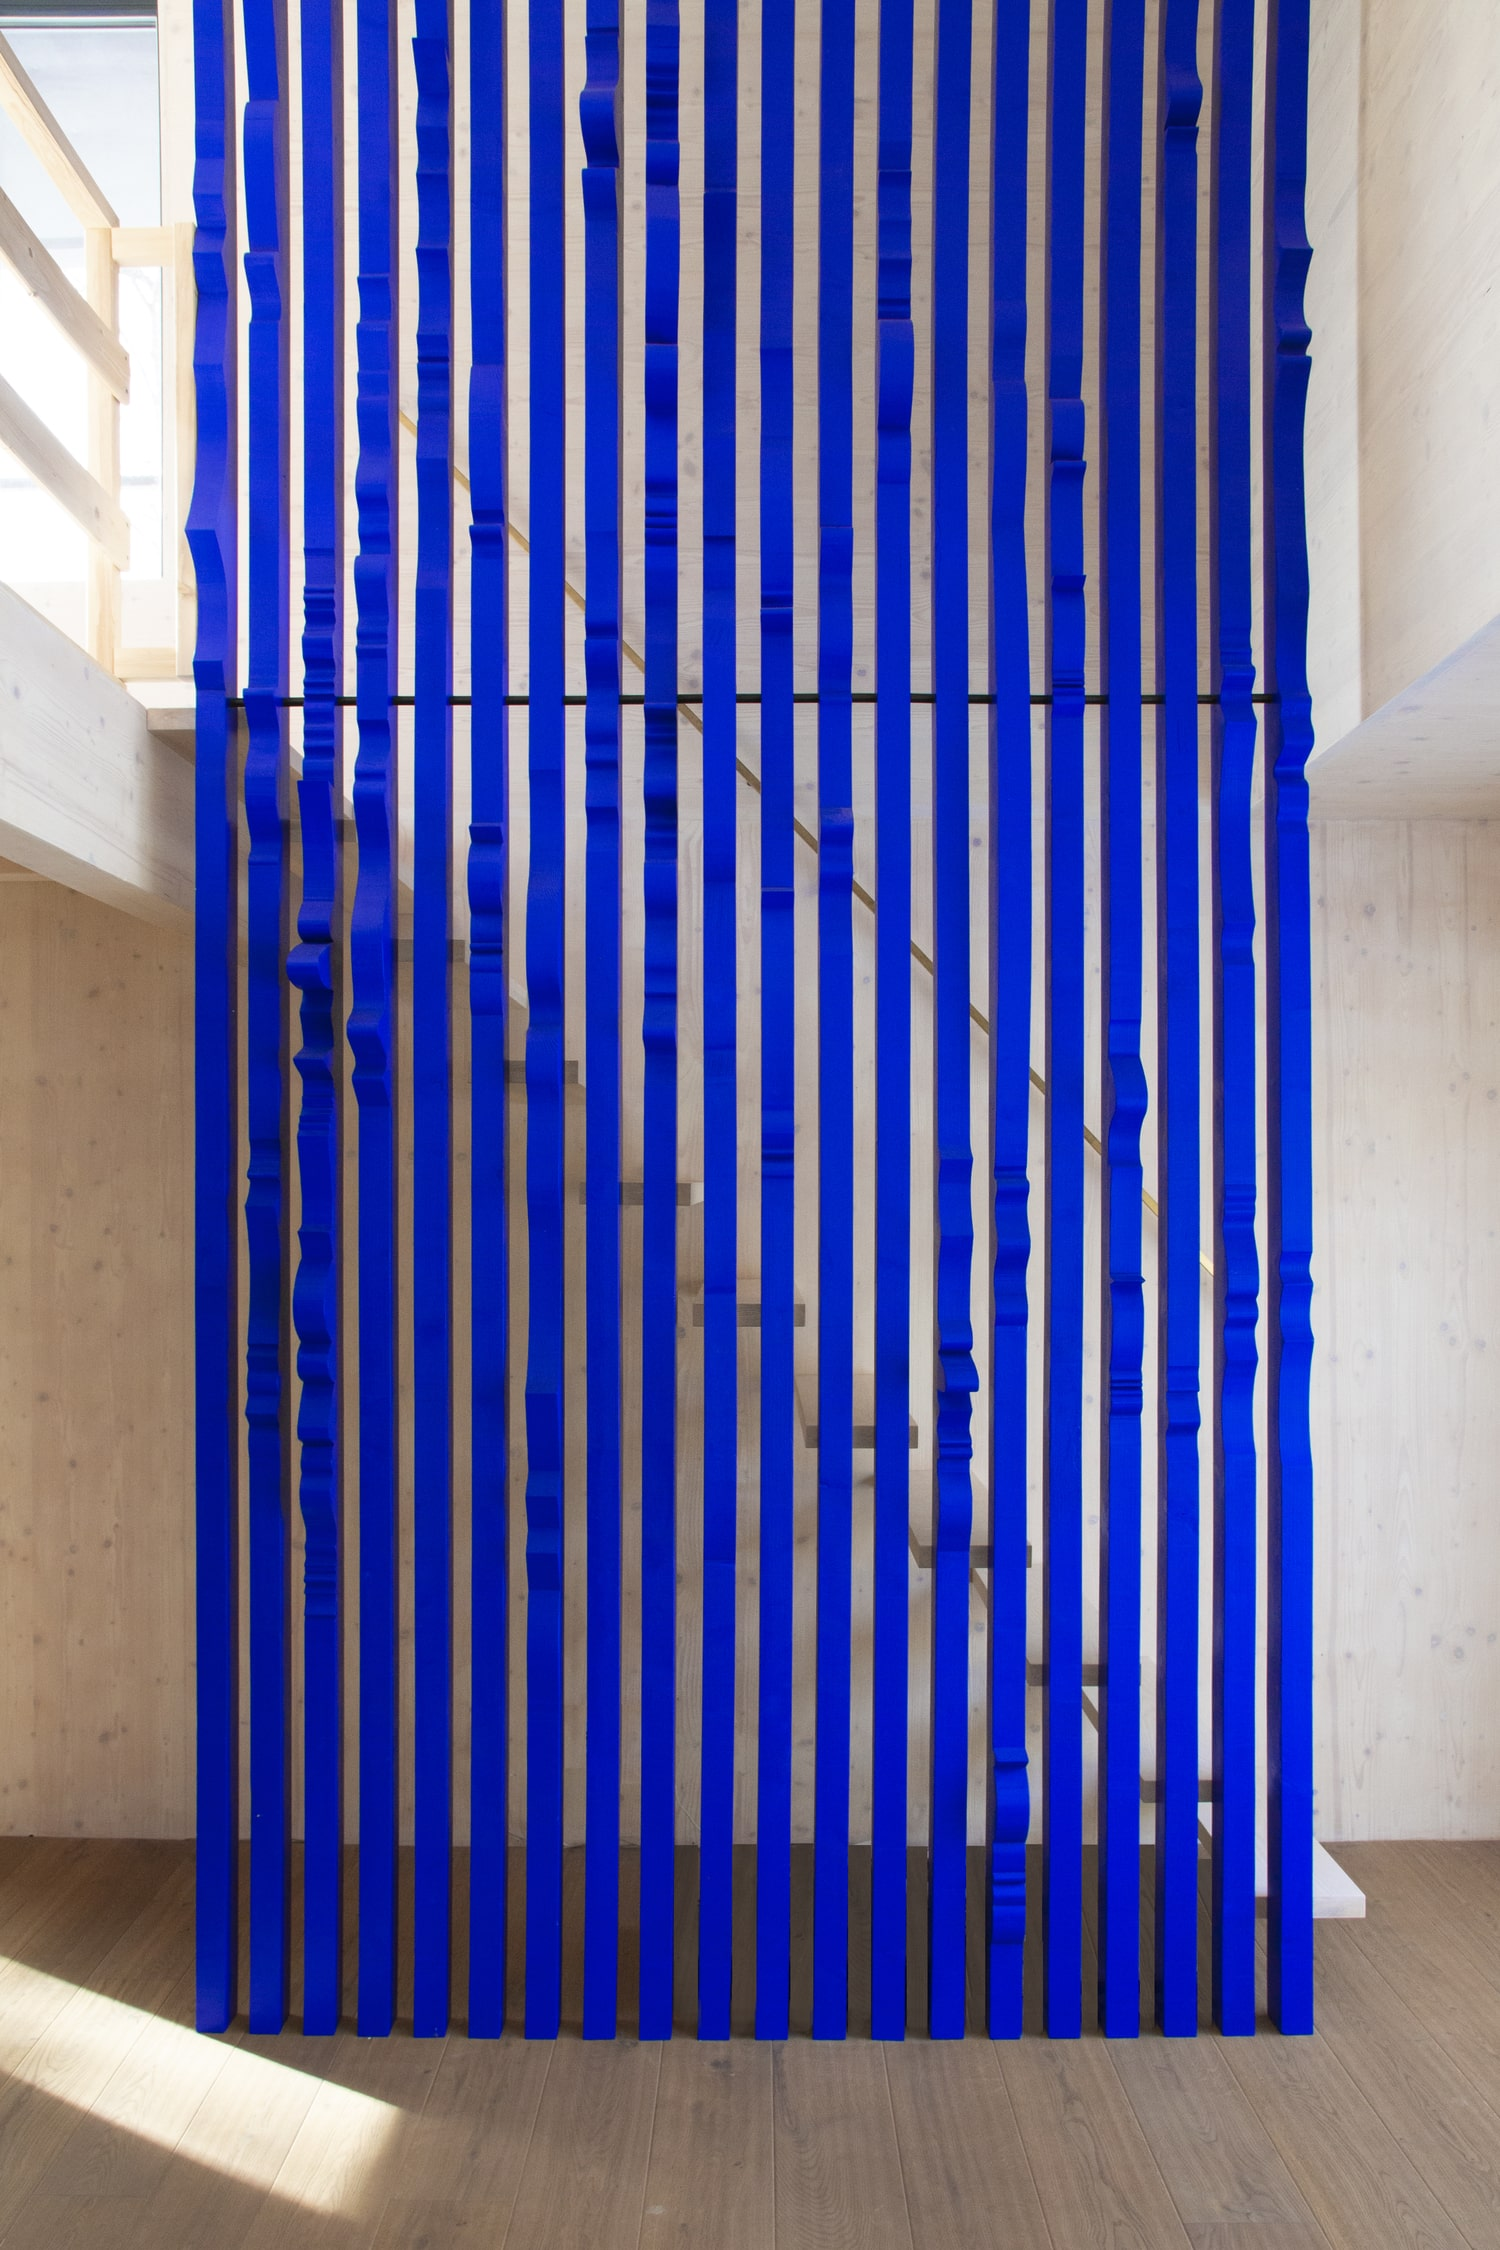 ultramarine staircase wall for private residence in milovice made of solid wood interior design by jiri krejcirik_4